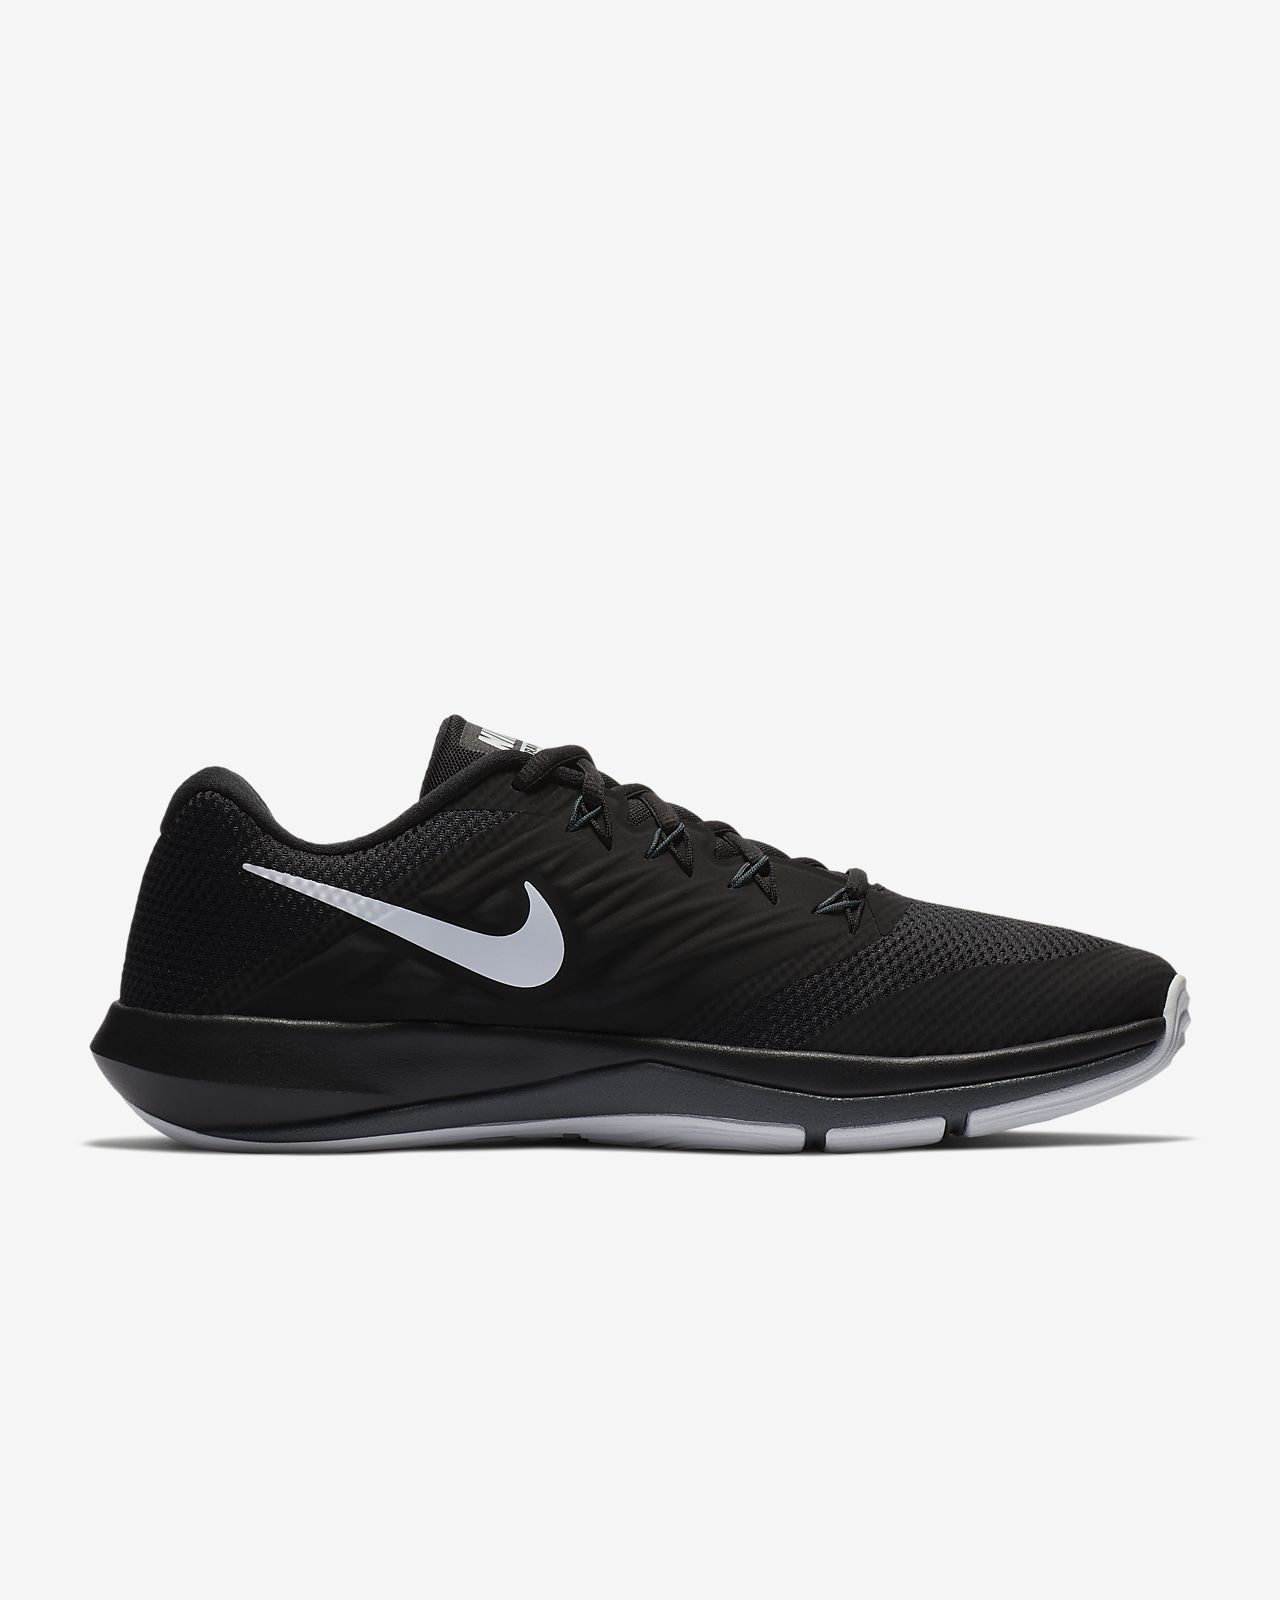 Nike Training Lunar Prime Iron II Training Shoe In Black 908969-001 buy cheap real with paypal cheap price discount footlocker pictures 7zE4KCtf71